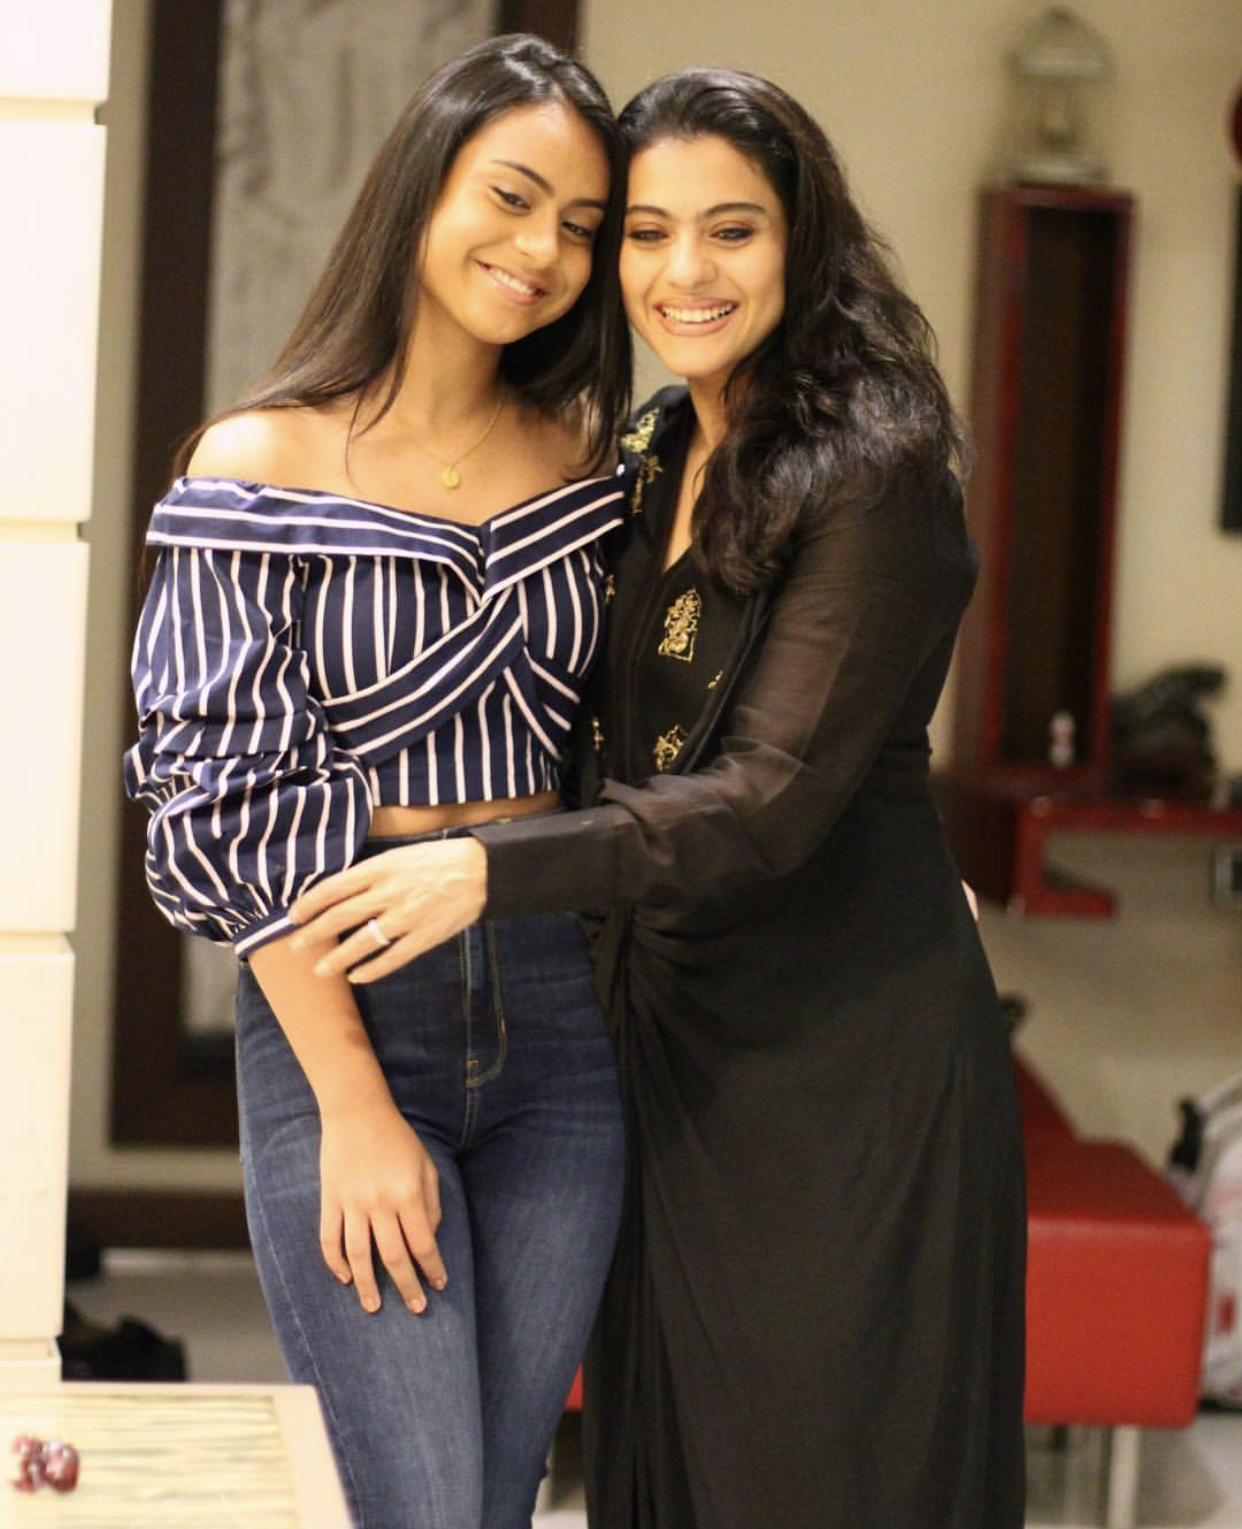 Kajol and Nysa helicopter eela screening picture by Radhika Mehra Instagram mother daughter duo beauty looks bollywood